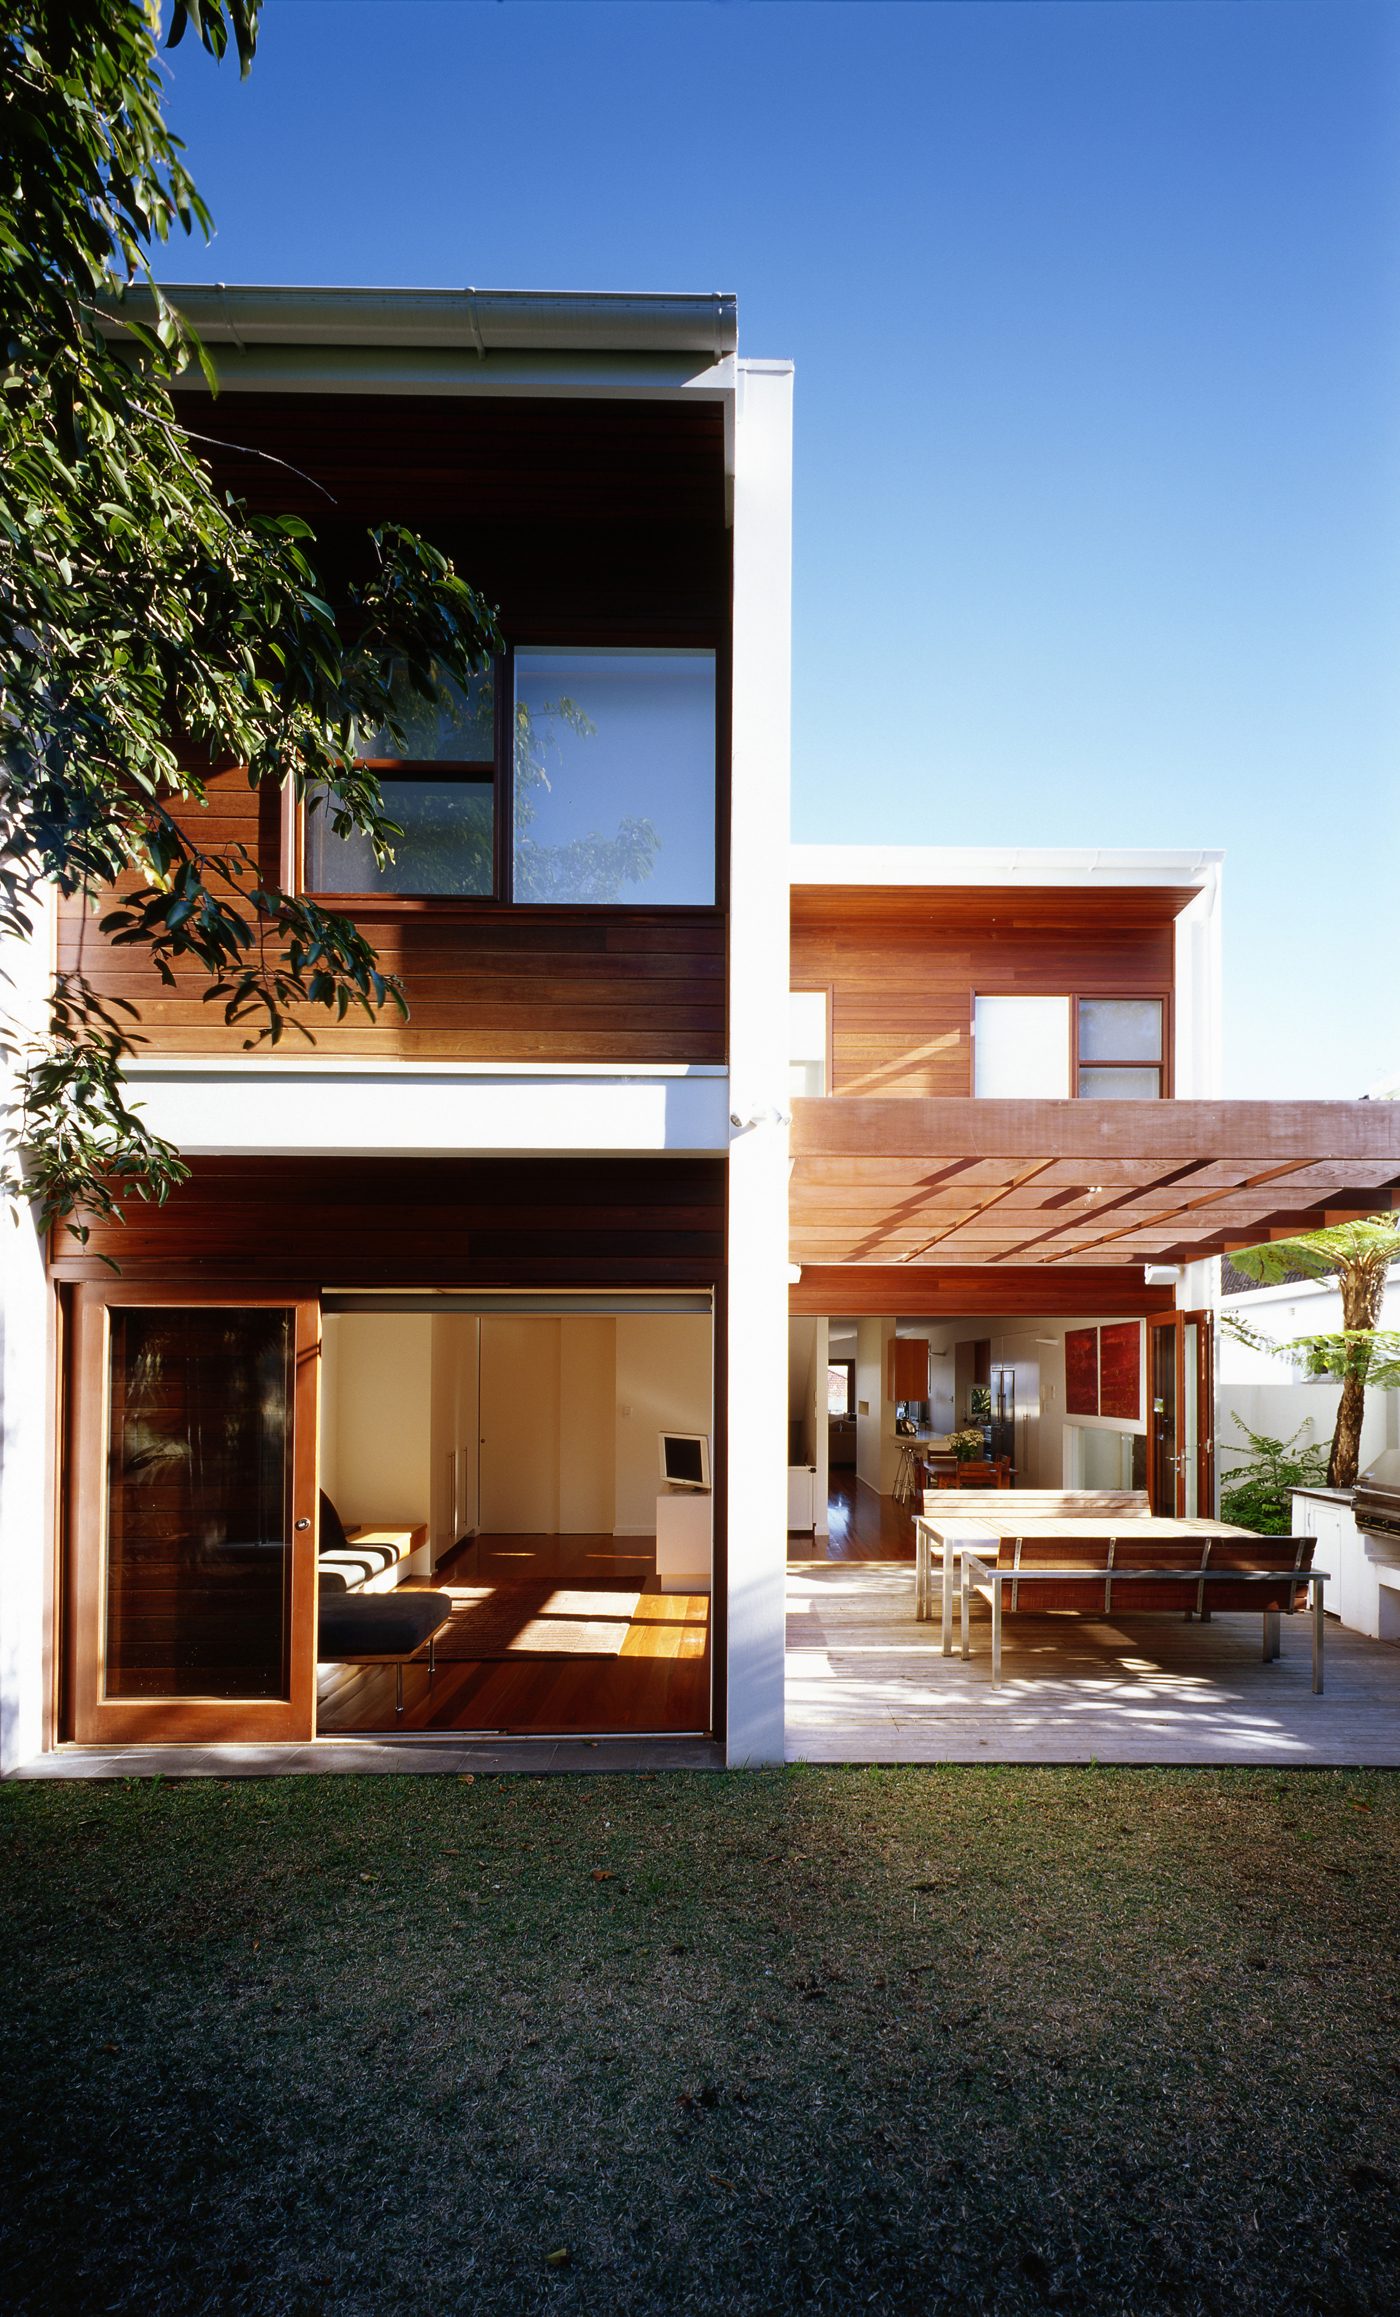 Harbour House by Sydney award winning residential architecture office Sam Crawford Architects. Eastern facade with outdoor terrace connected to backyard